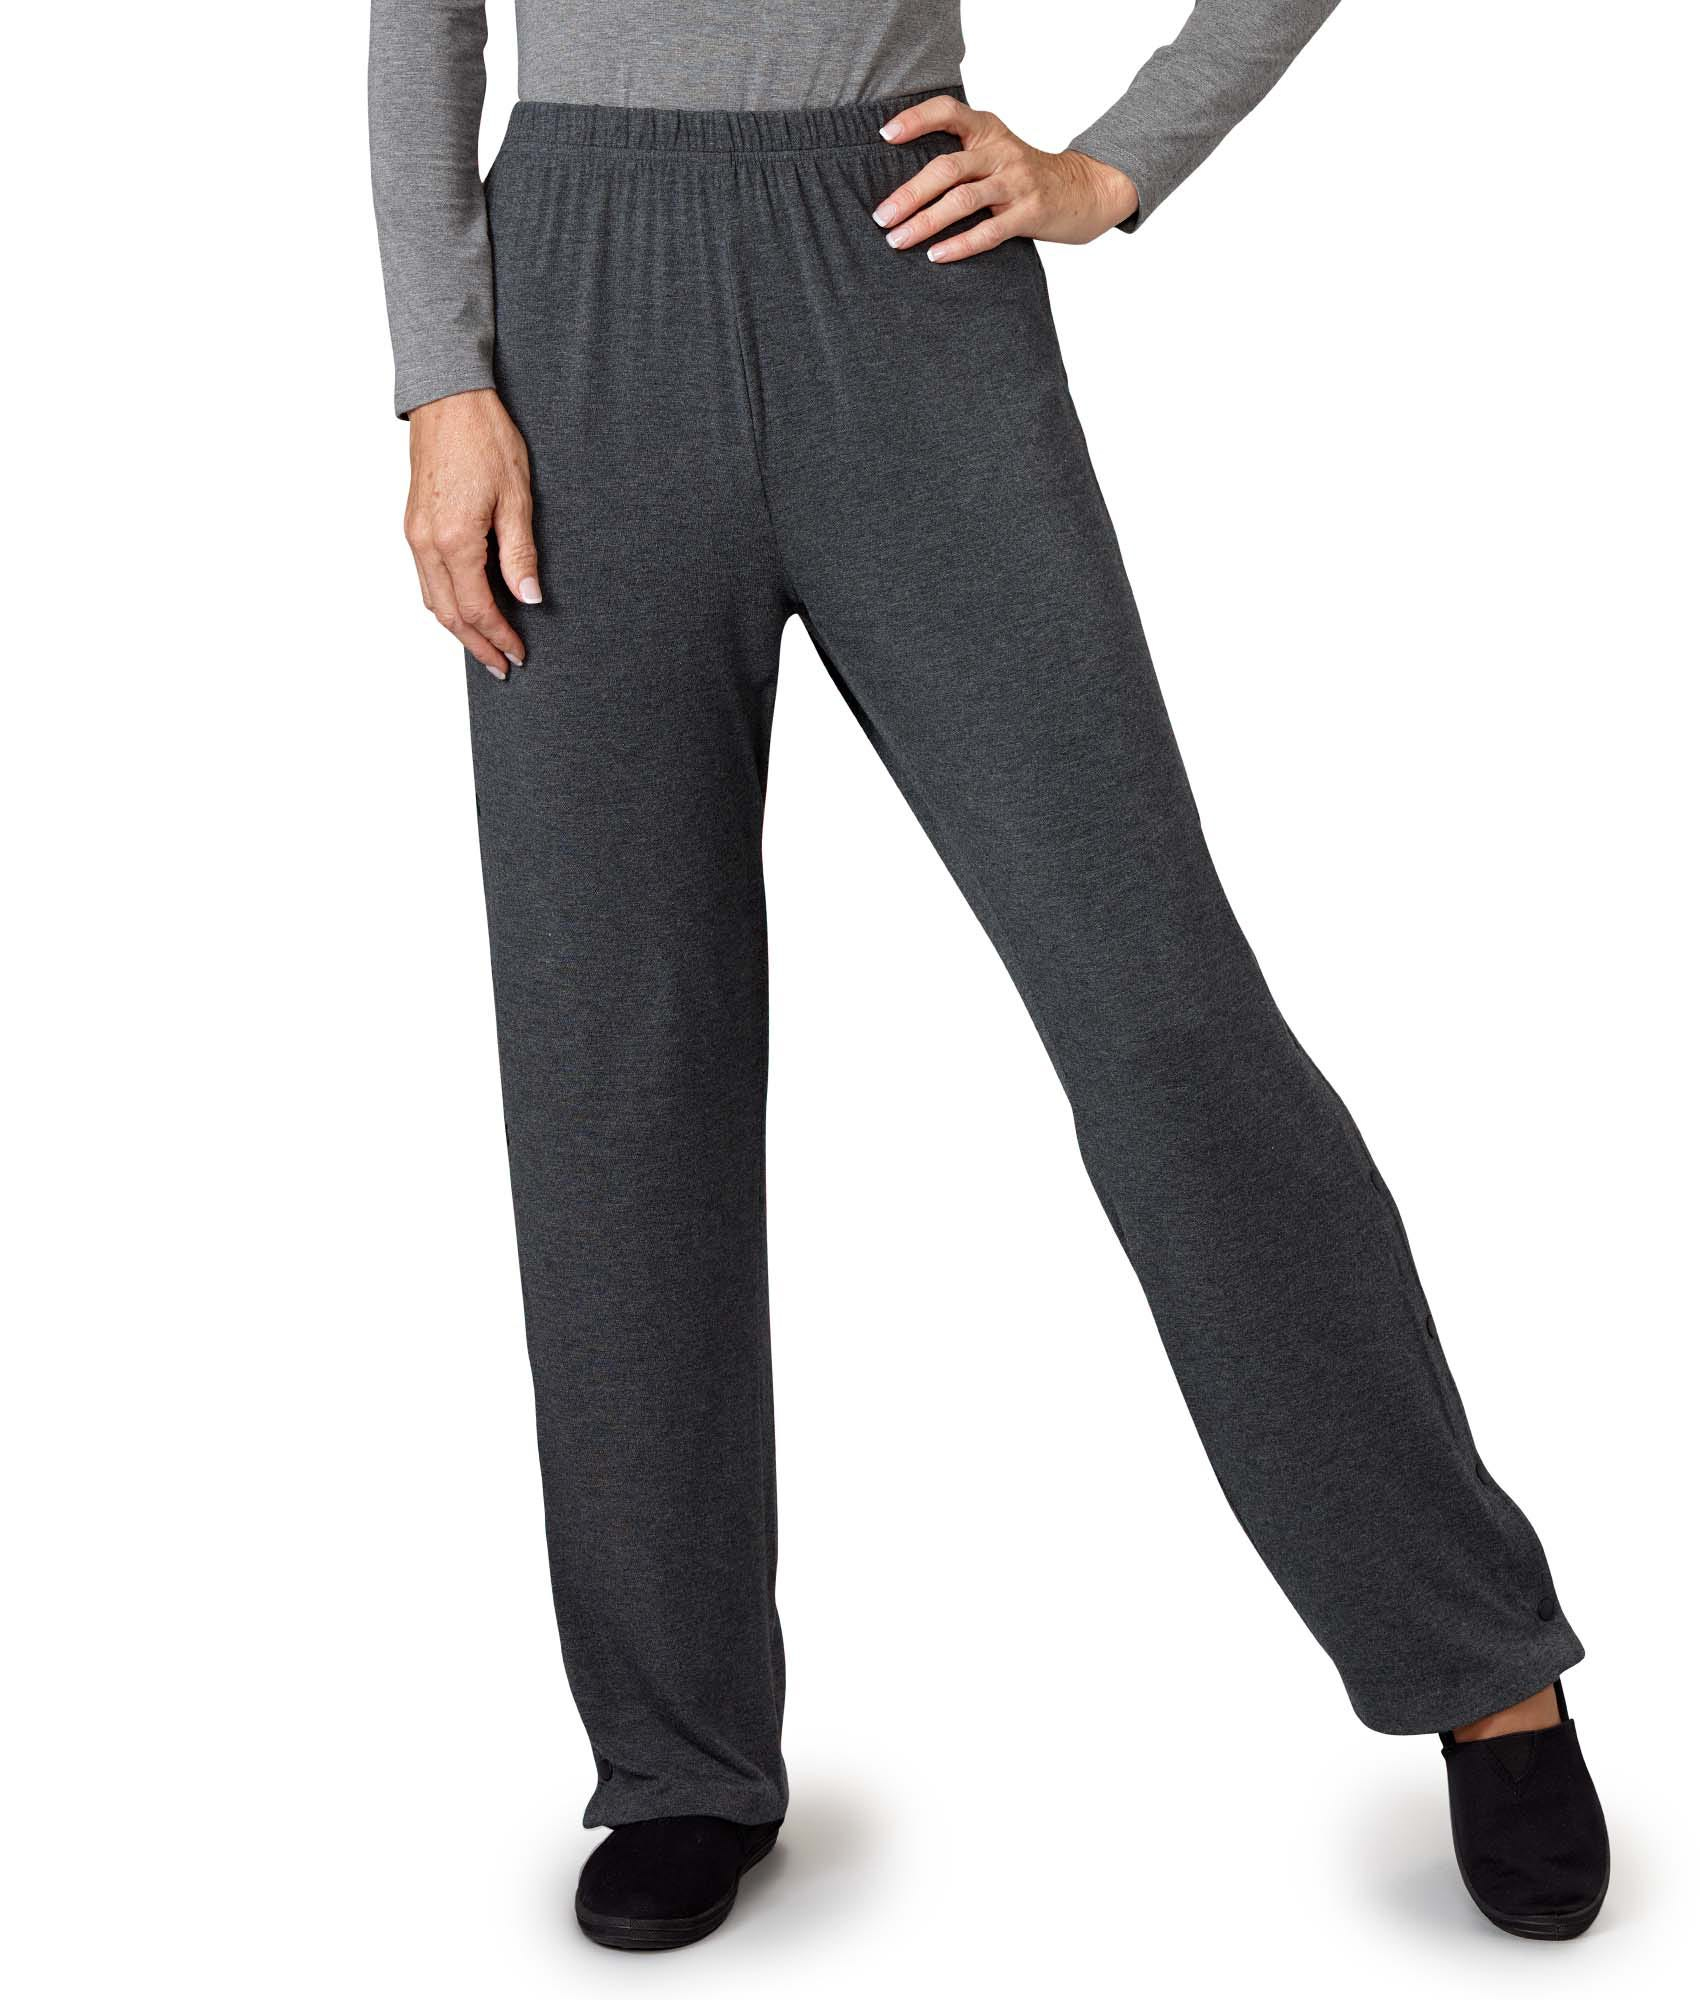 Womens and Mens Post-Surgical Tearaway Pants With Snaps